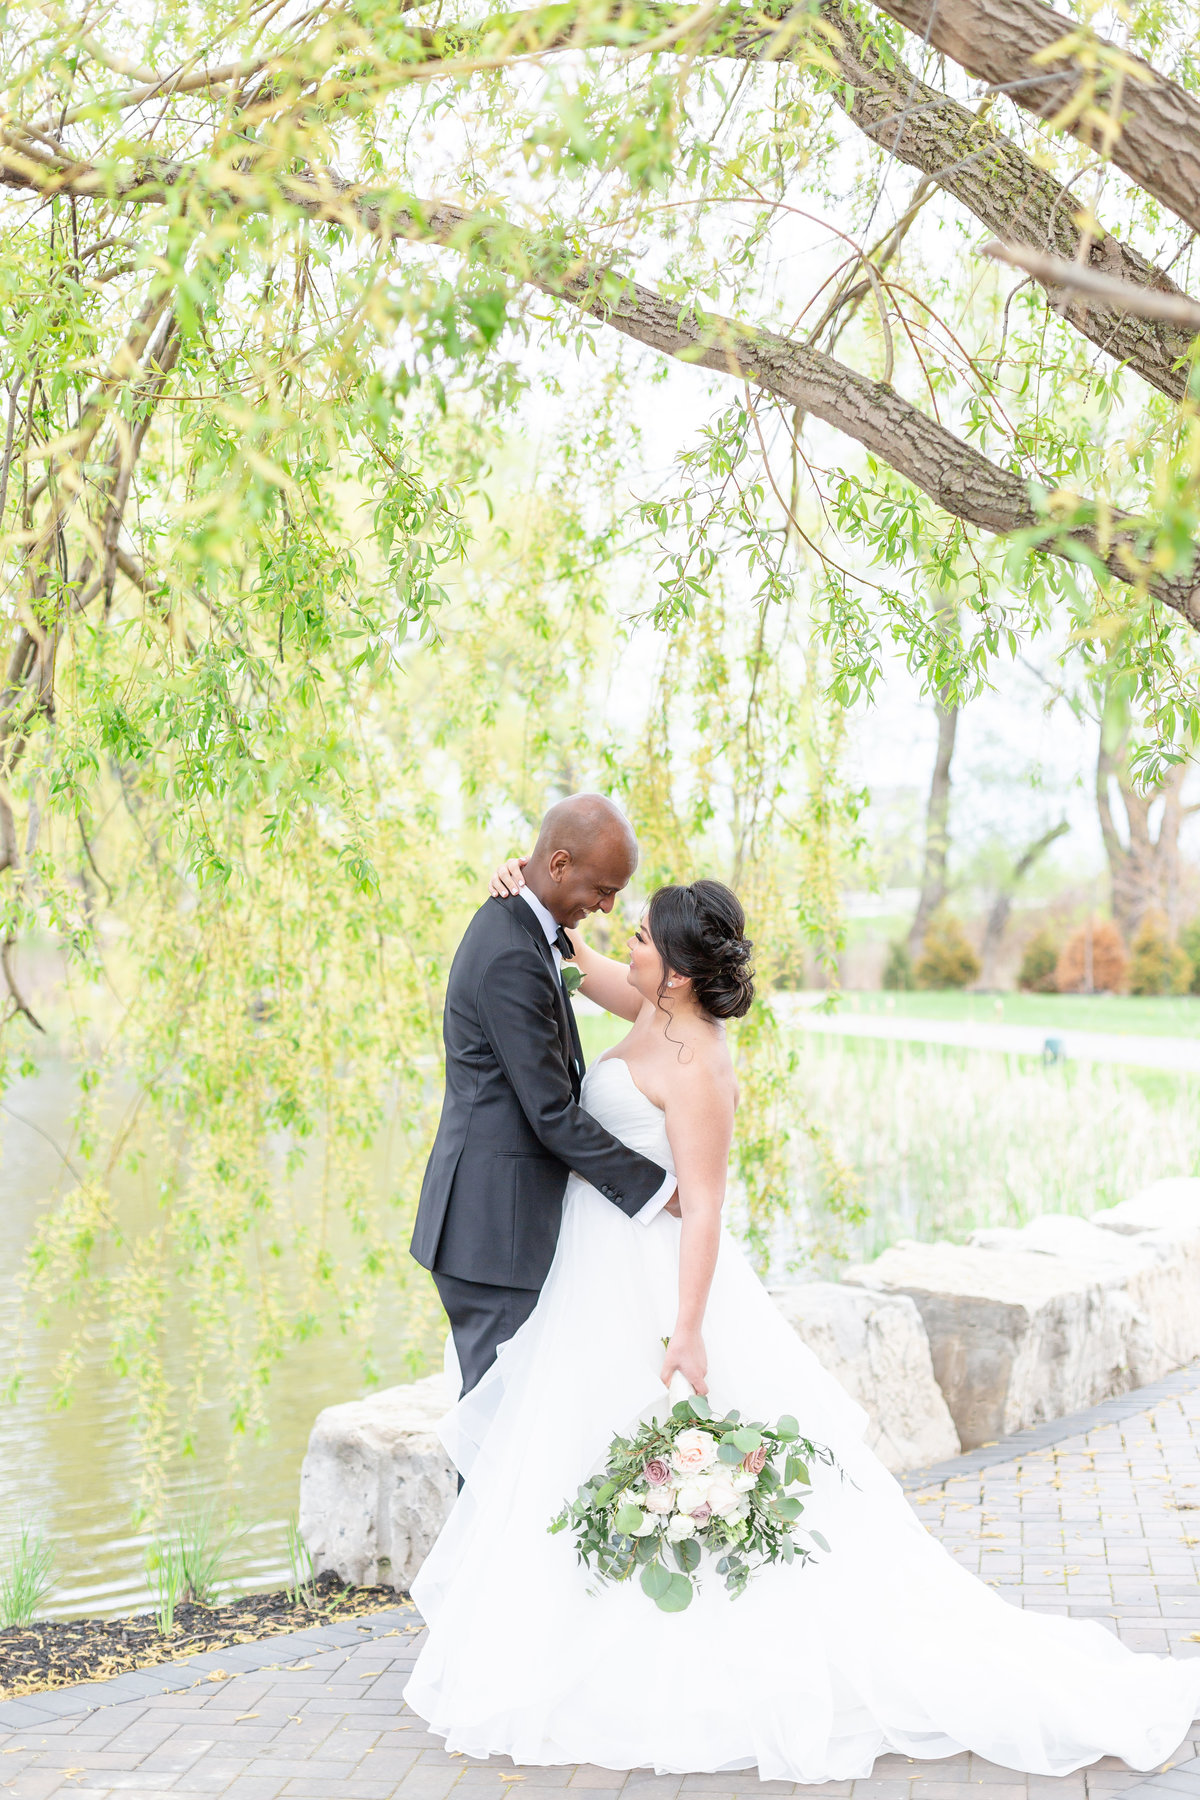 arlington-estae-Vicky-and-Emmanuel-Wedding-Bride-and-Groom-Chris-and-Micaela-Photography-91